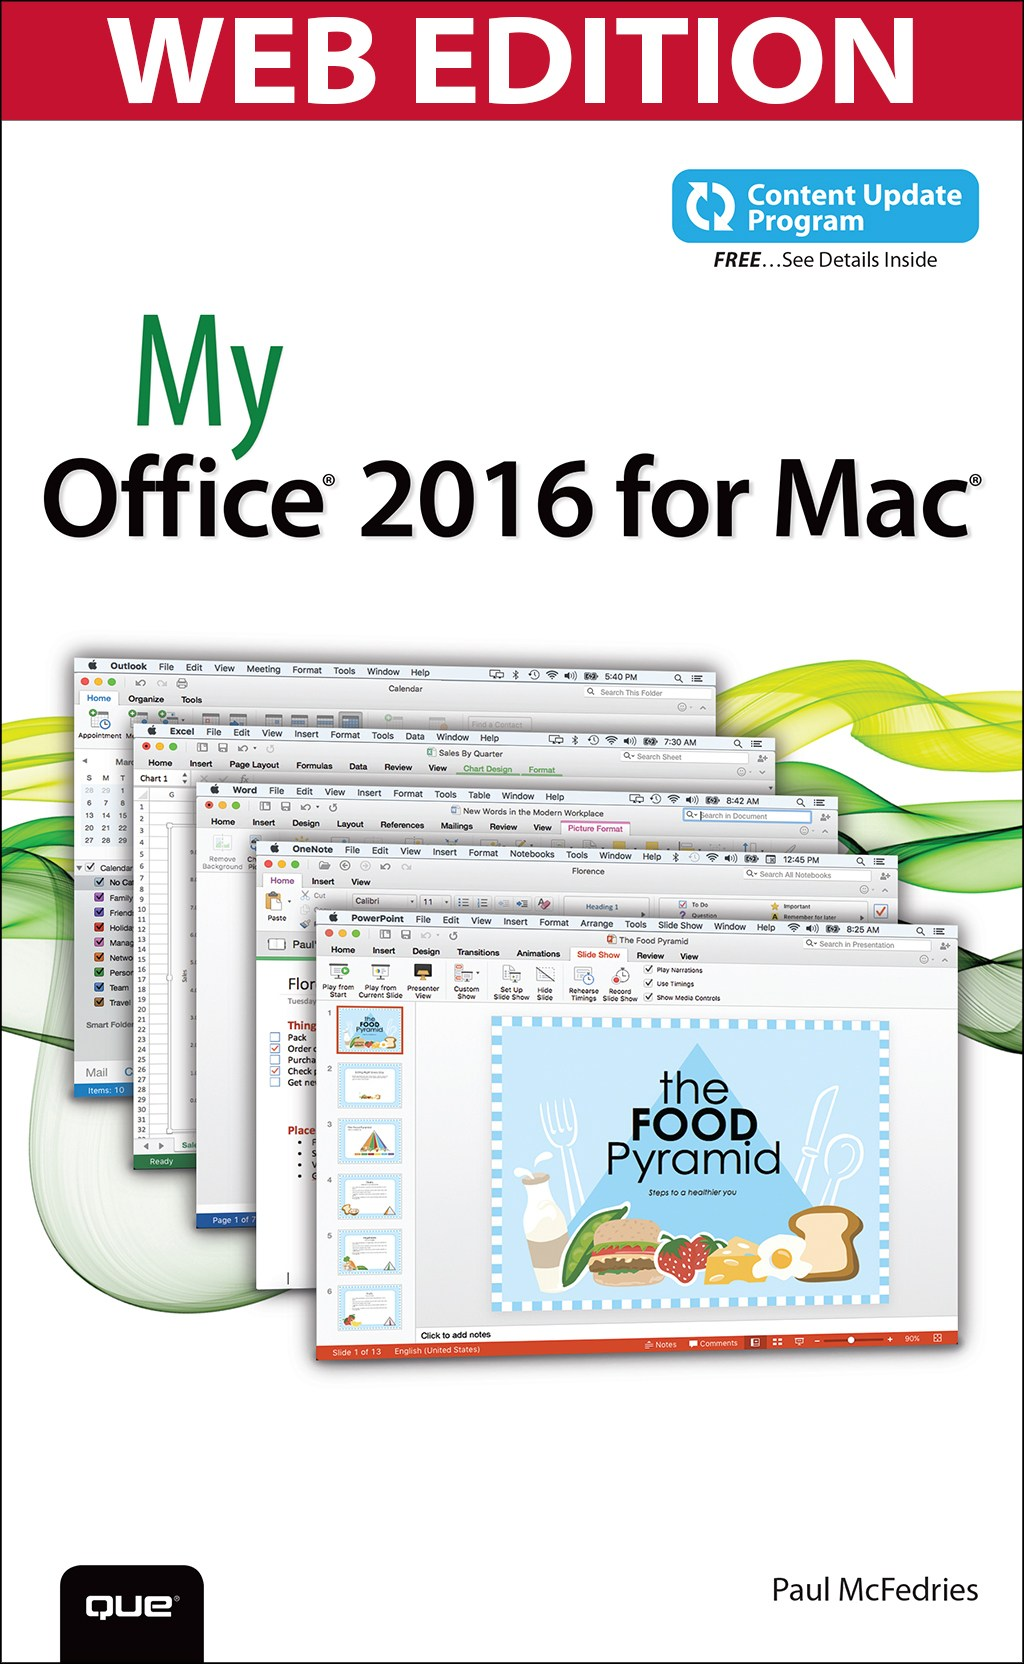 My Office 2016 for Mac, (Web Edition and Content Update Program)